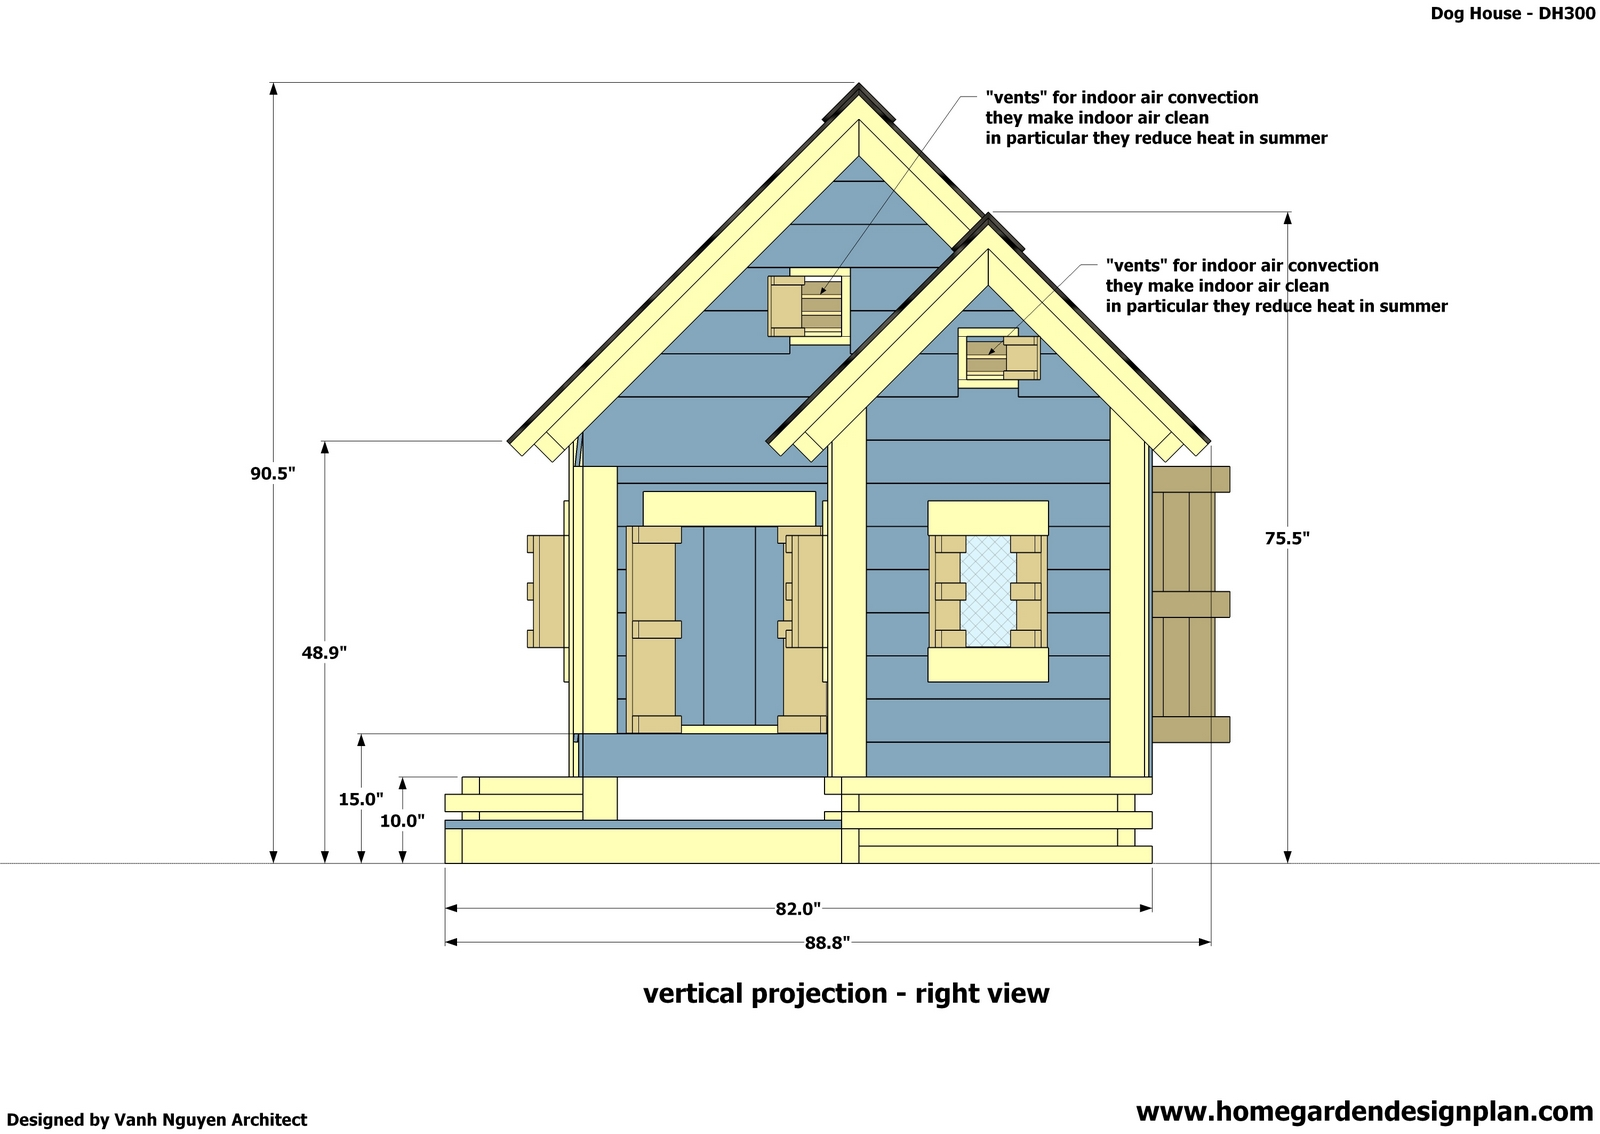 Home garden plans dh300 dog house plans free how to for House designs online